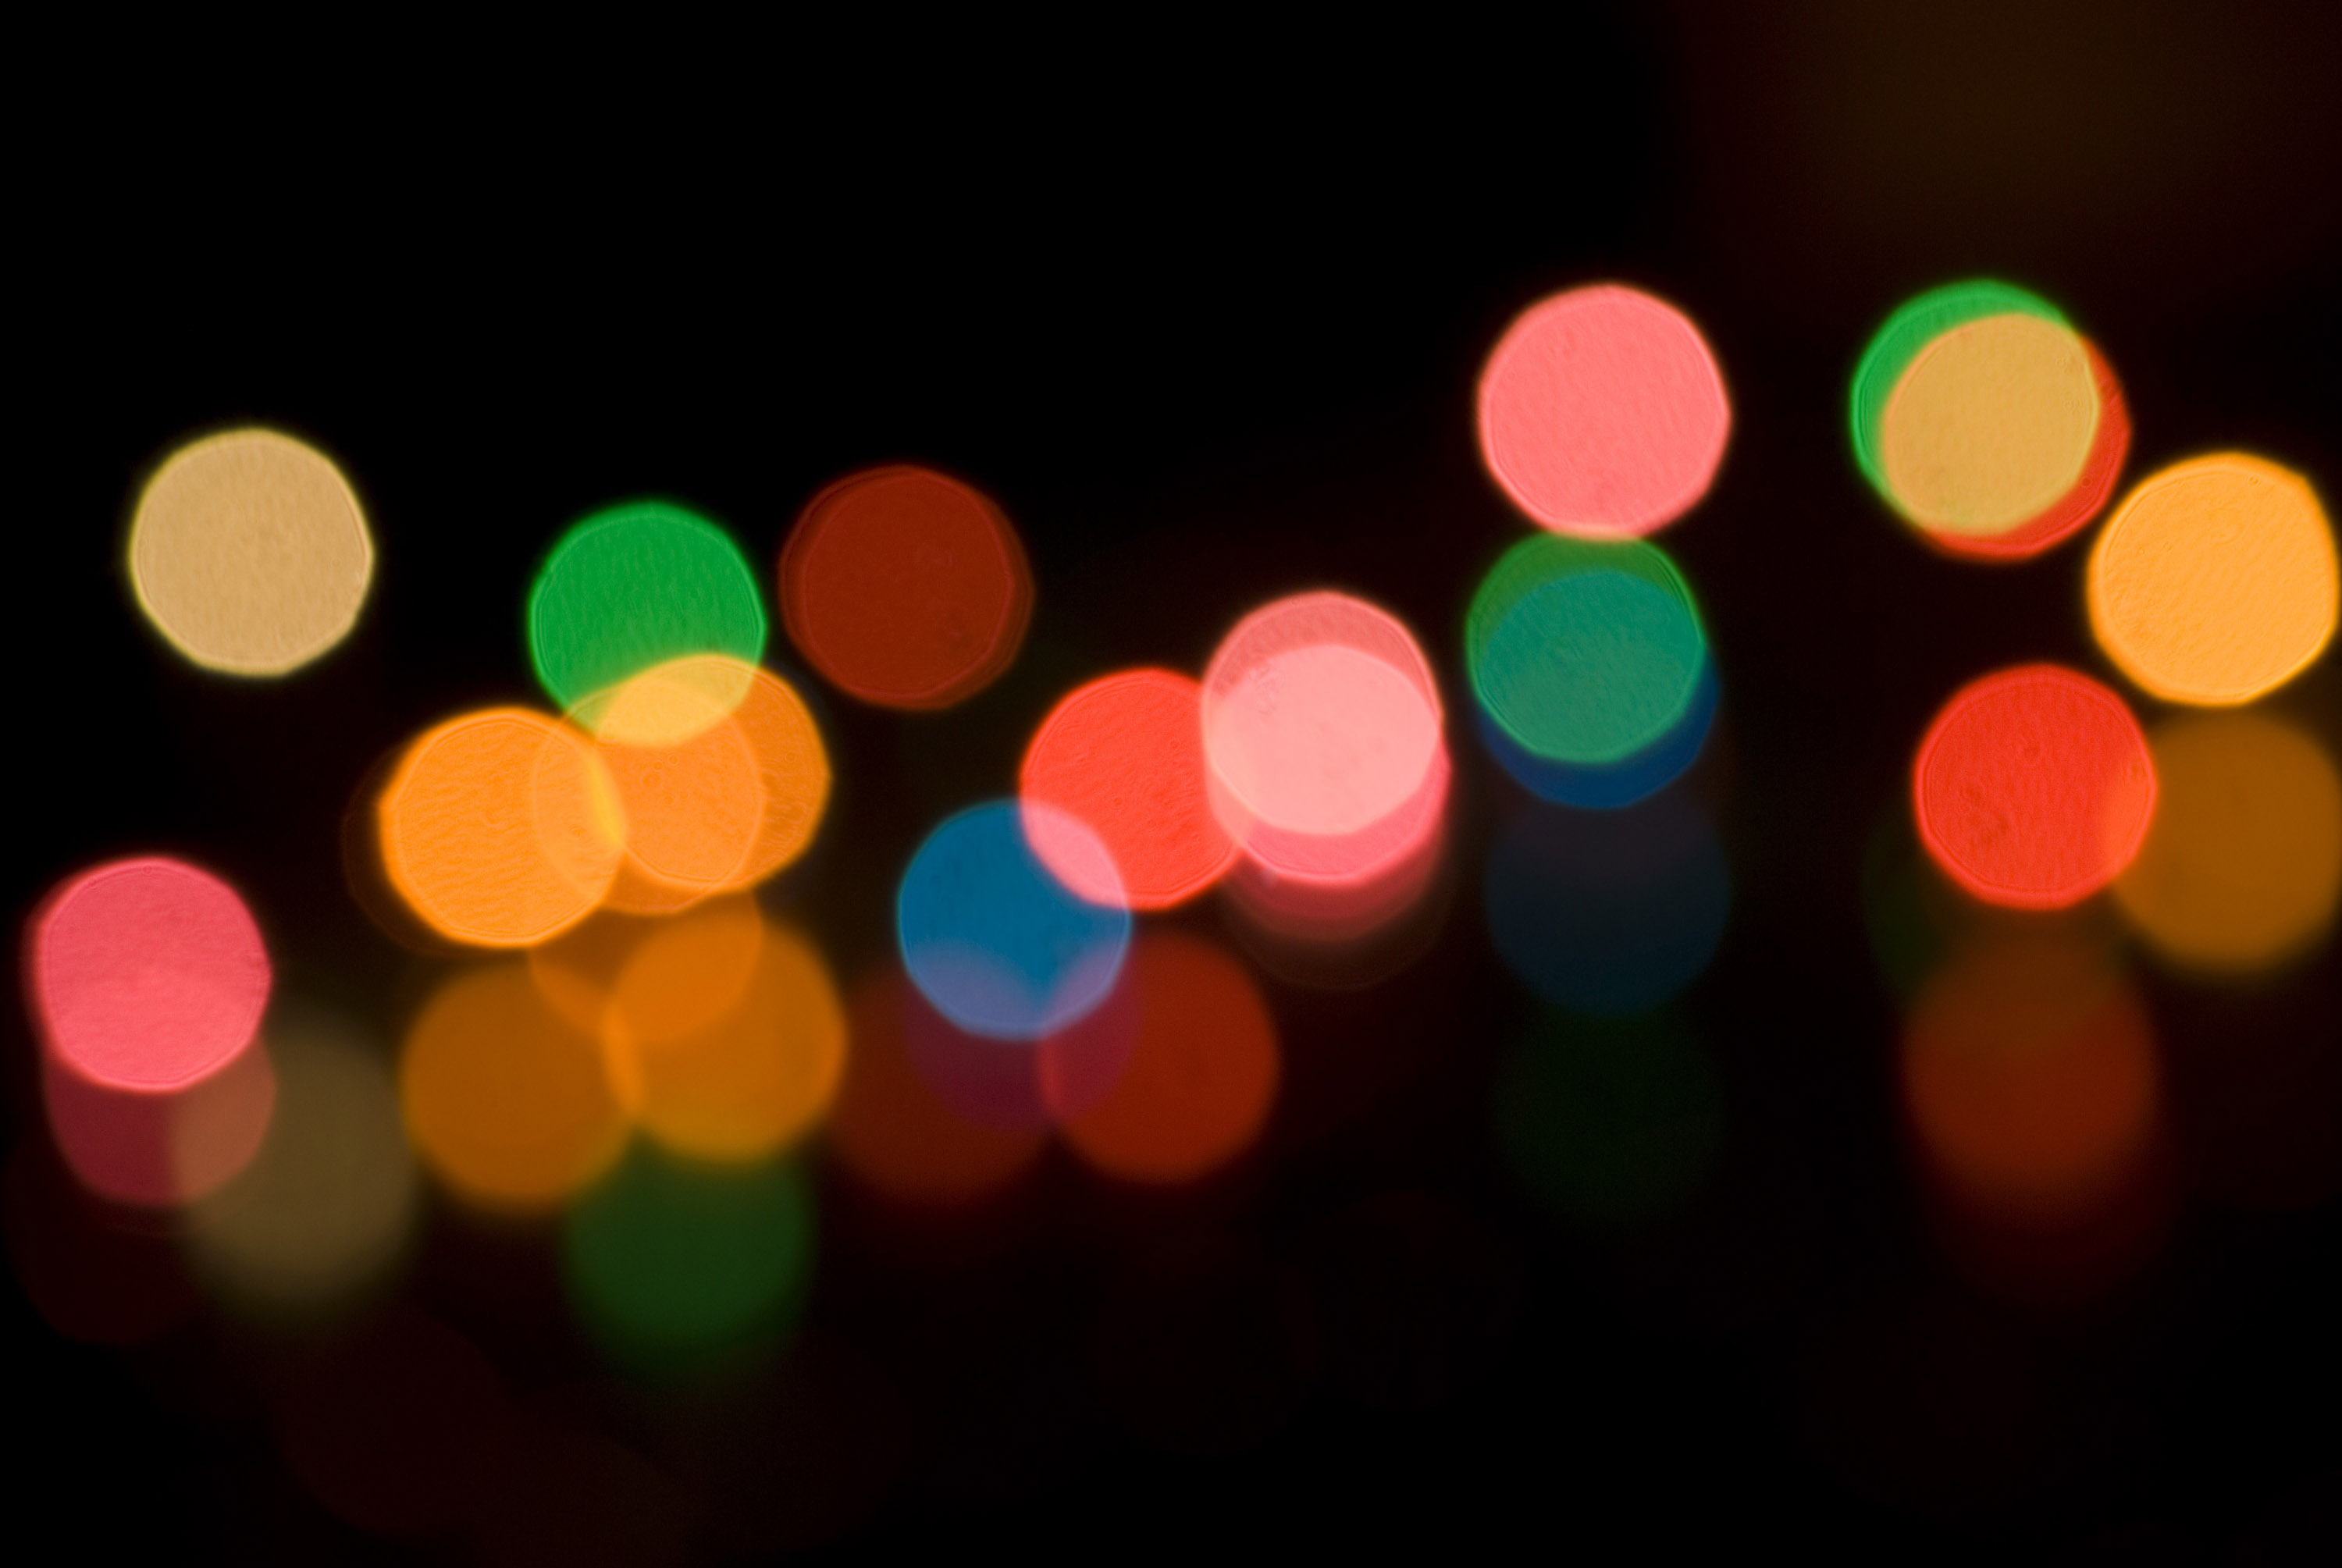 how to make blurry light pictures